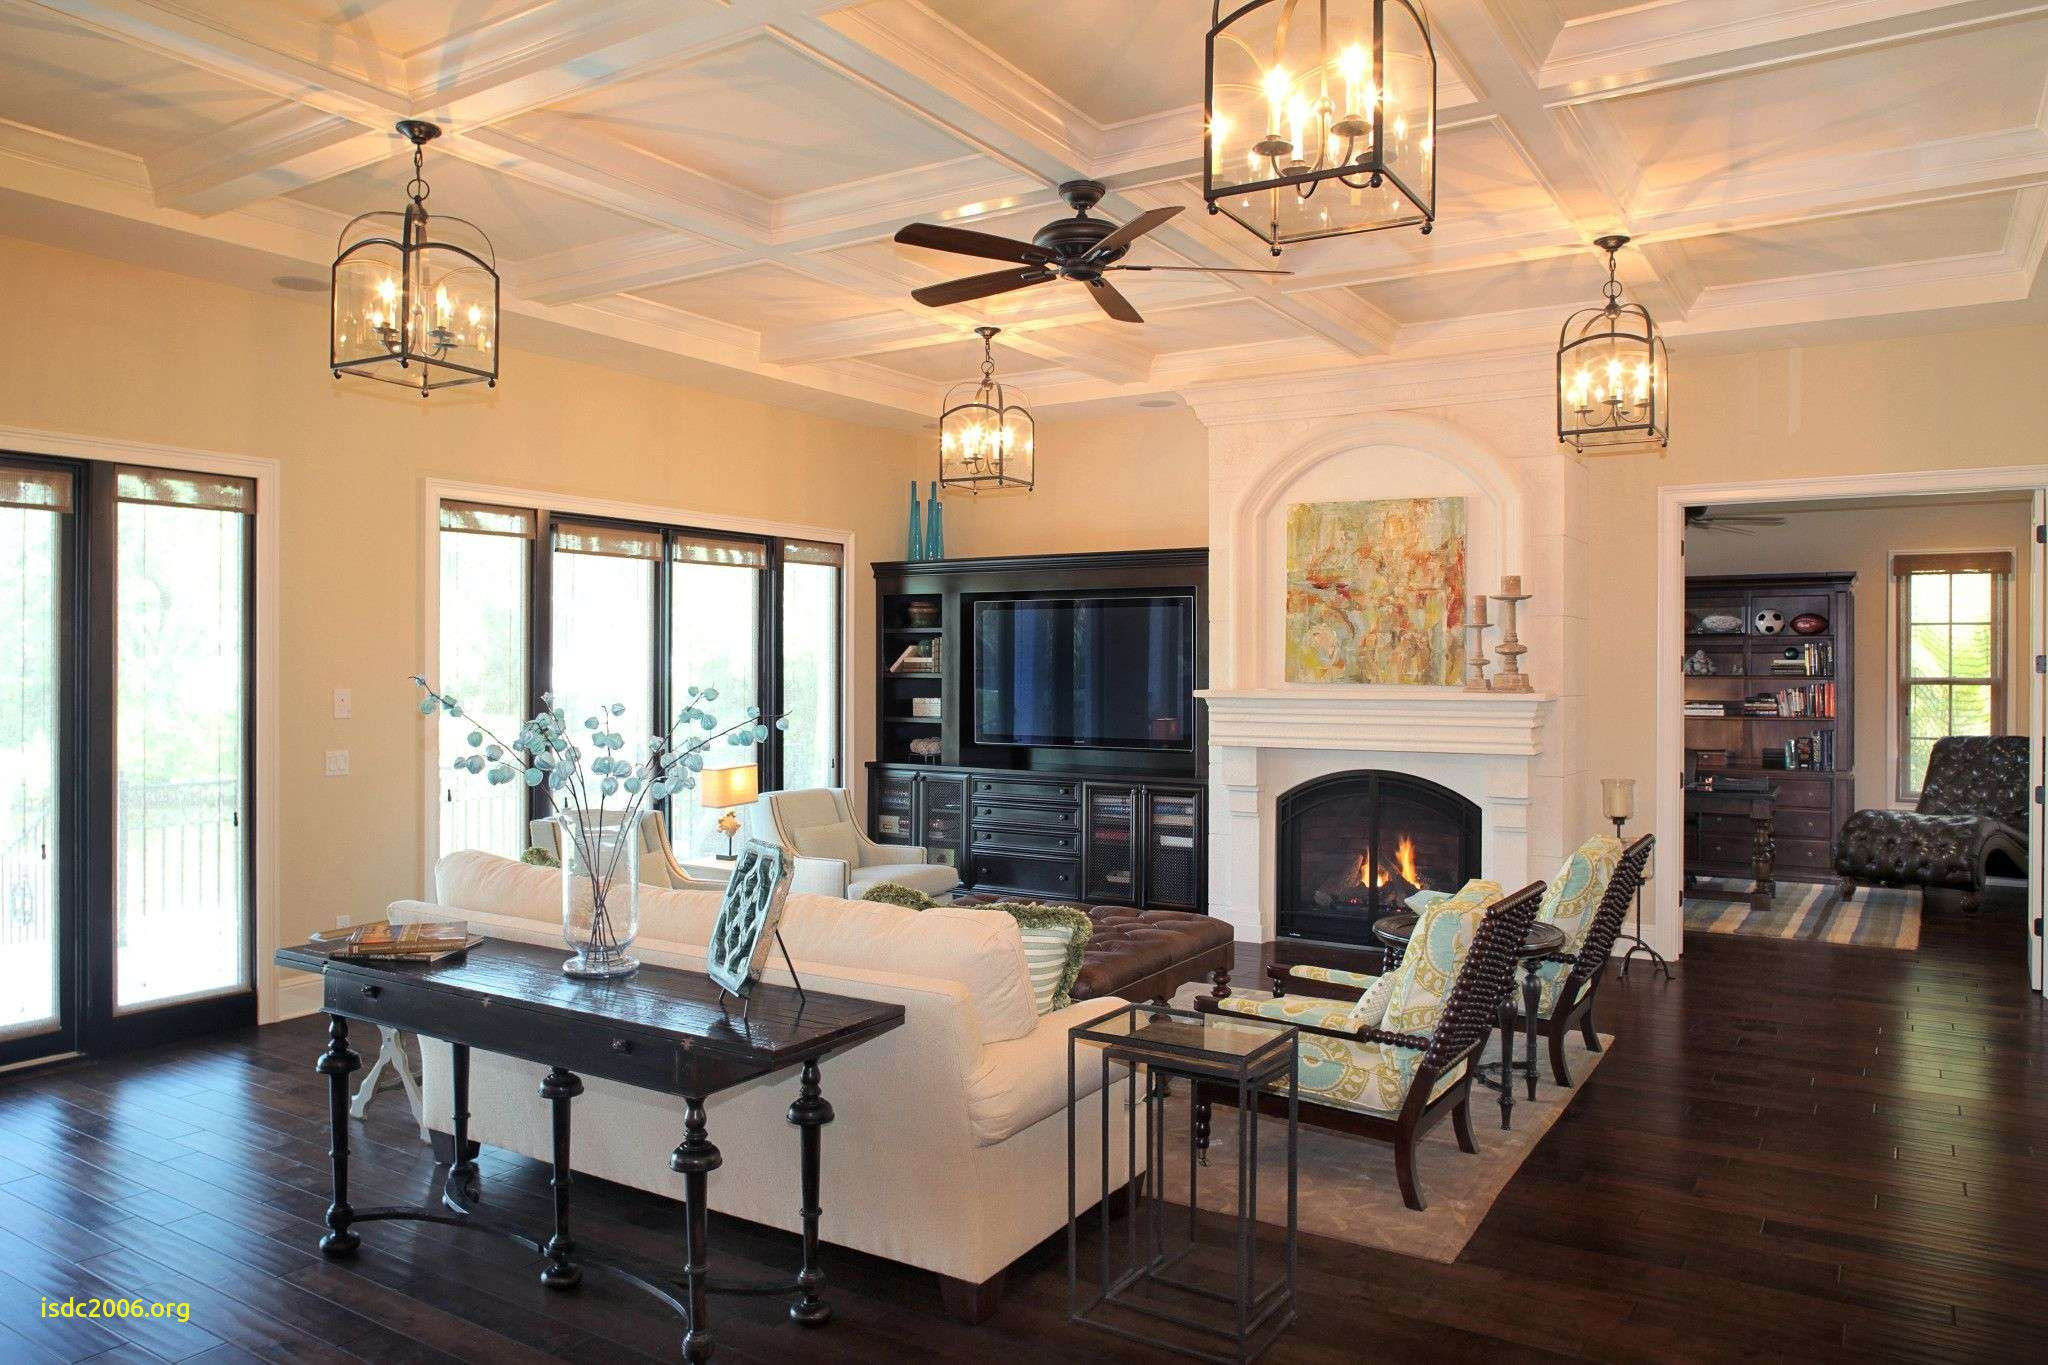 best hardwood floor for living room of best of traditional home decor house design and decoration idea inside living room traditional decorating ideas awesome shaker chairs 0d design ideas bedroom furniture ideas